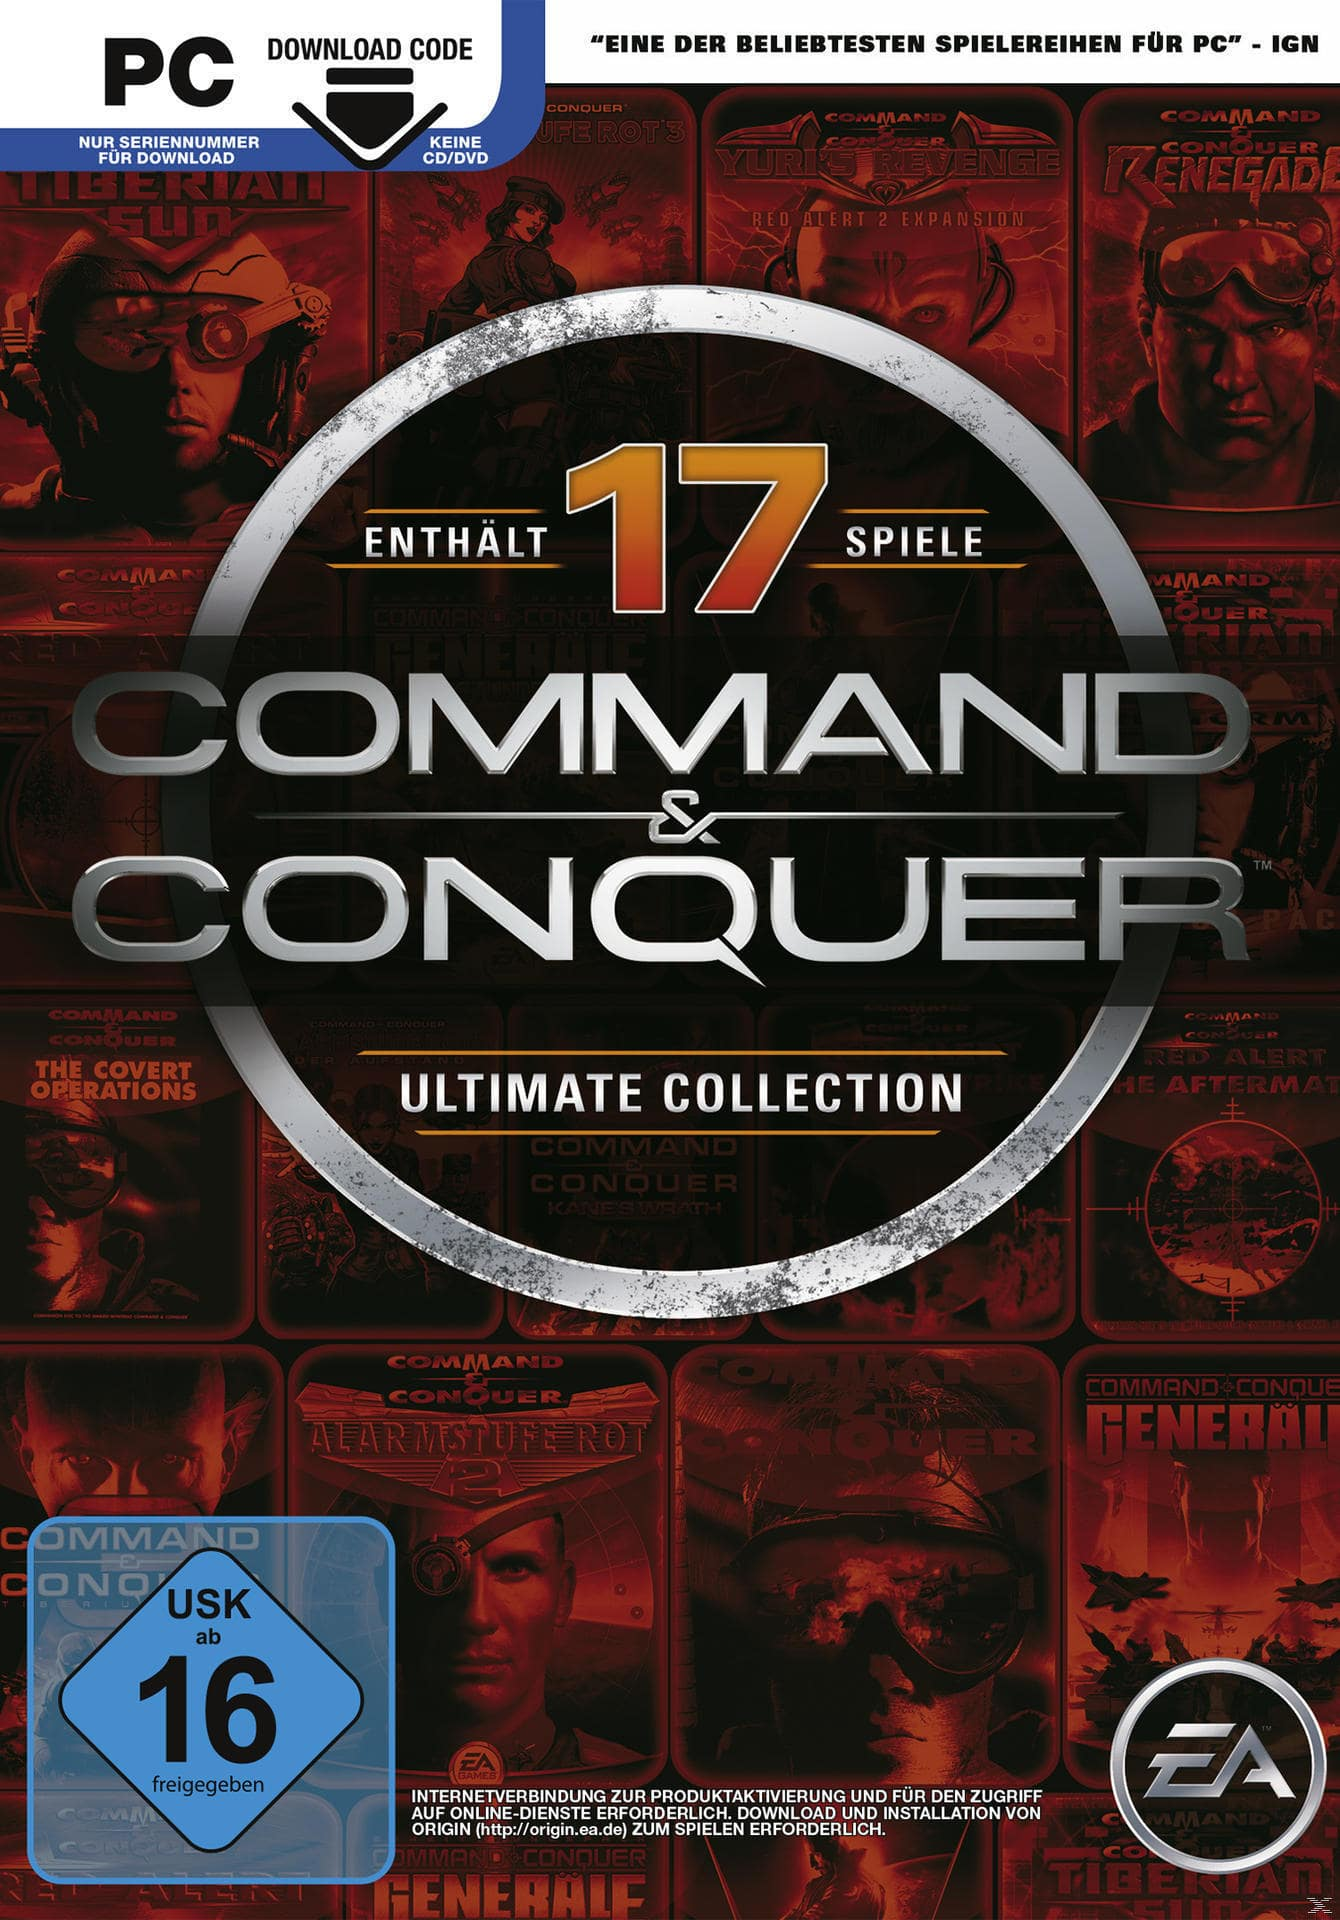 Command & Conquer Ultimate Collection (PC) für 15,00 Euro